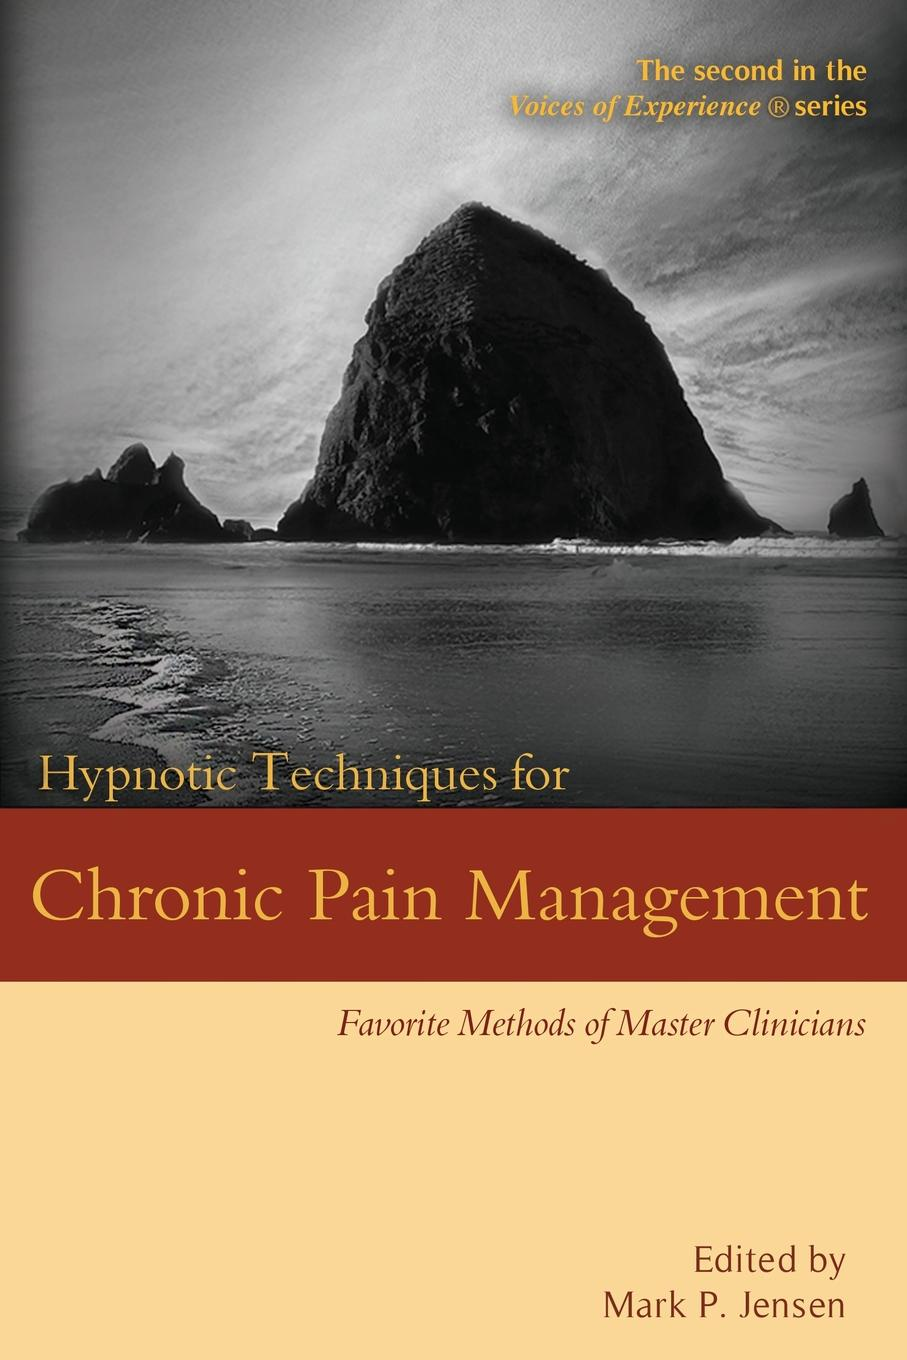 Hypnotic Techniques for Chronic Pain Management. Favorite Methods of Master Clinicians